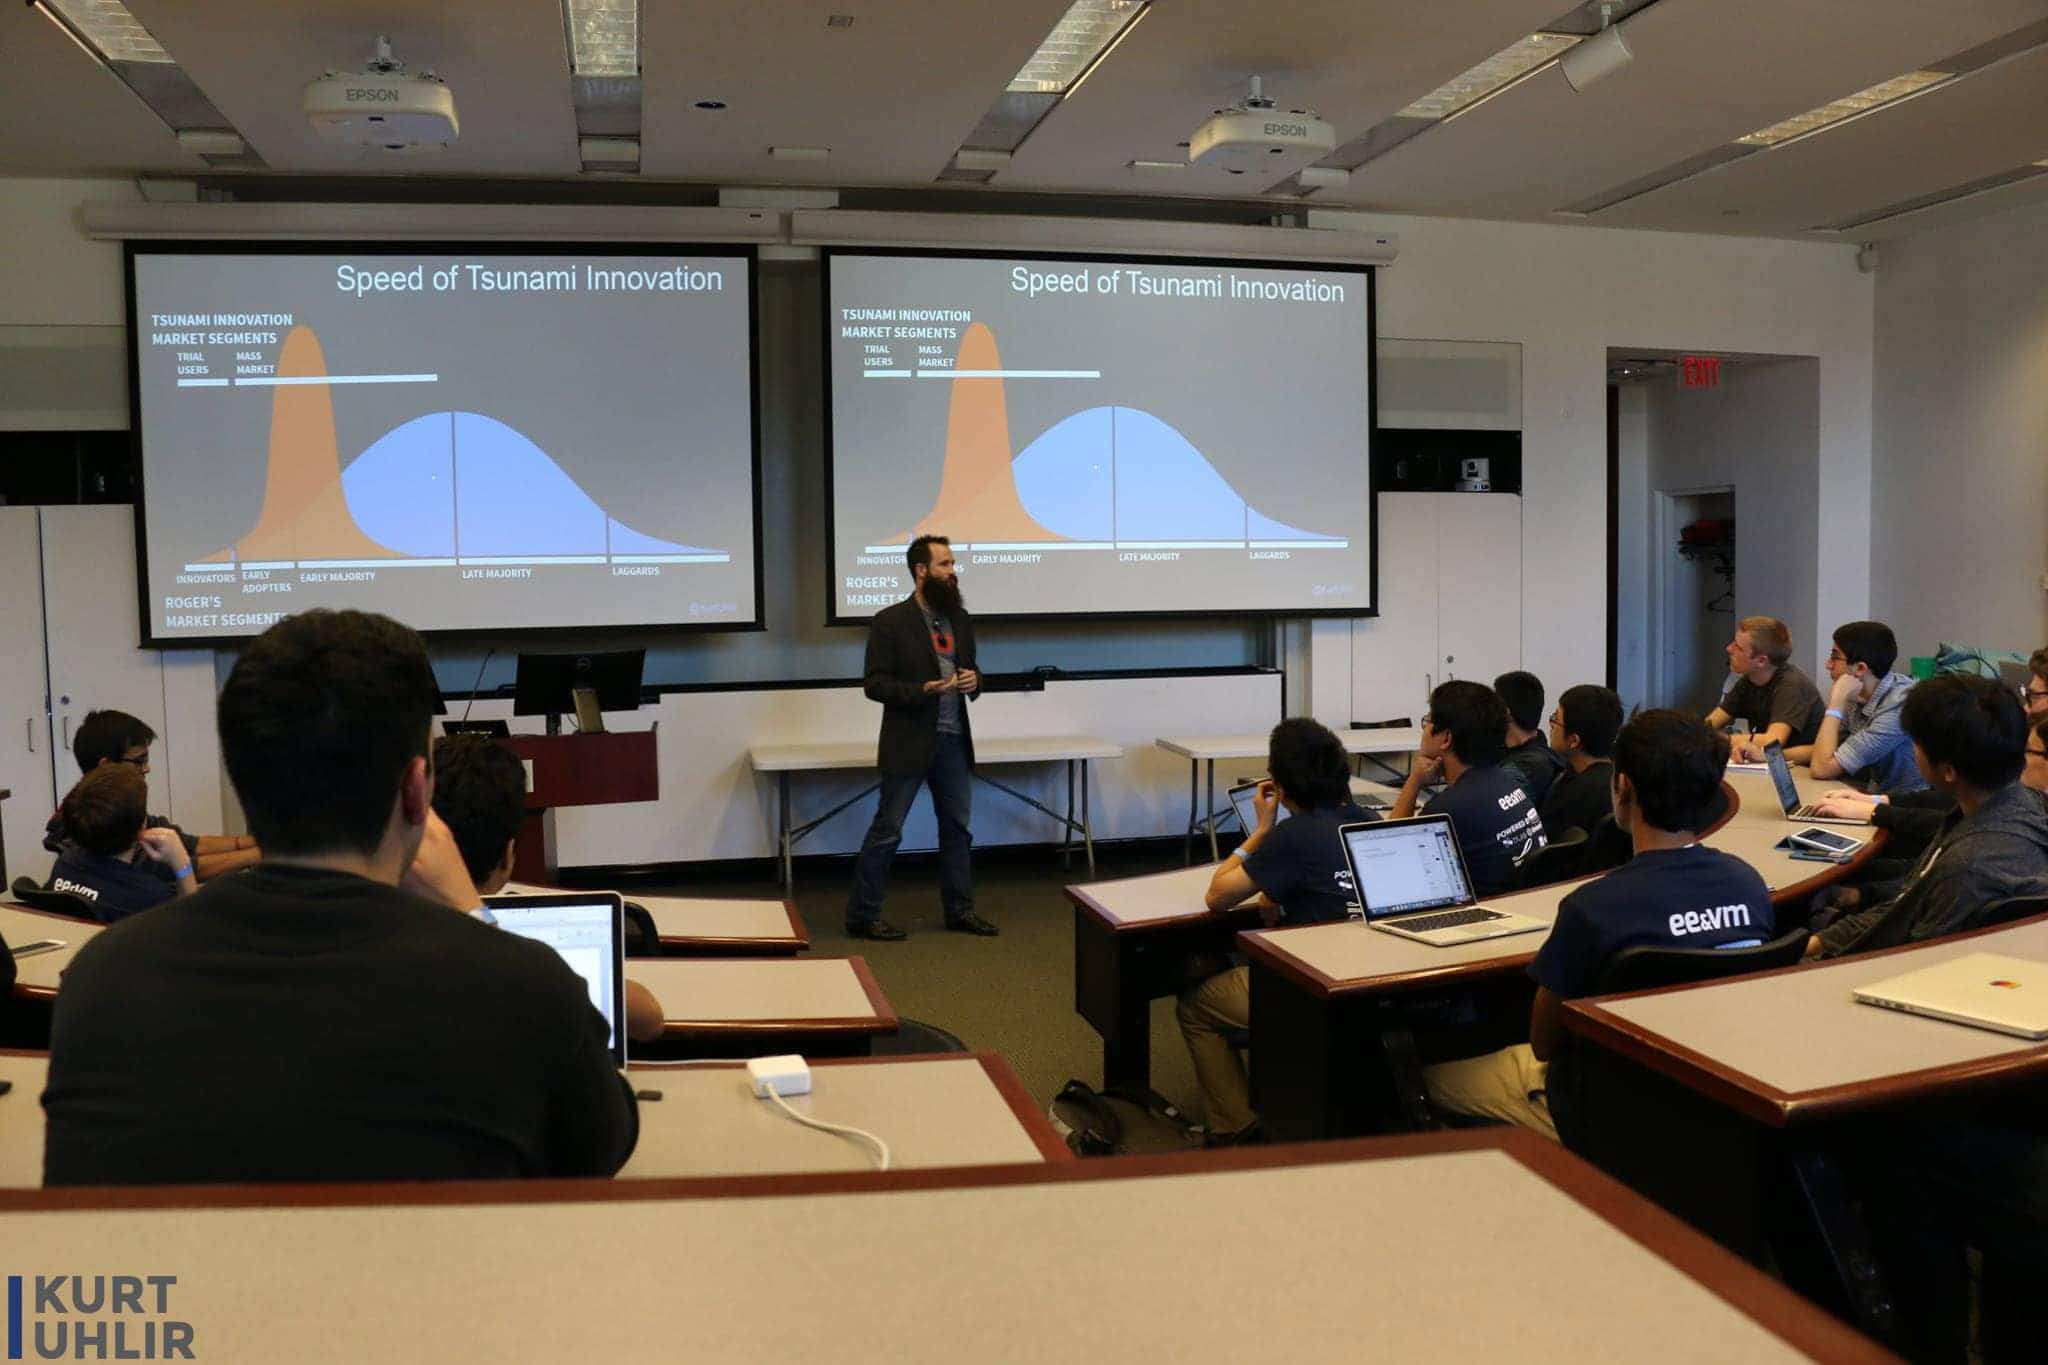 Kurt Uhlir speaking on how to best present your business at Emory